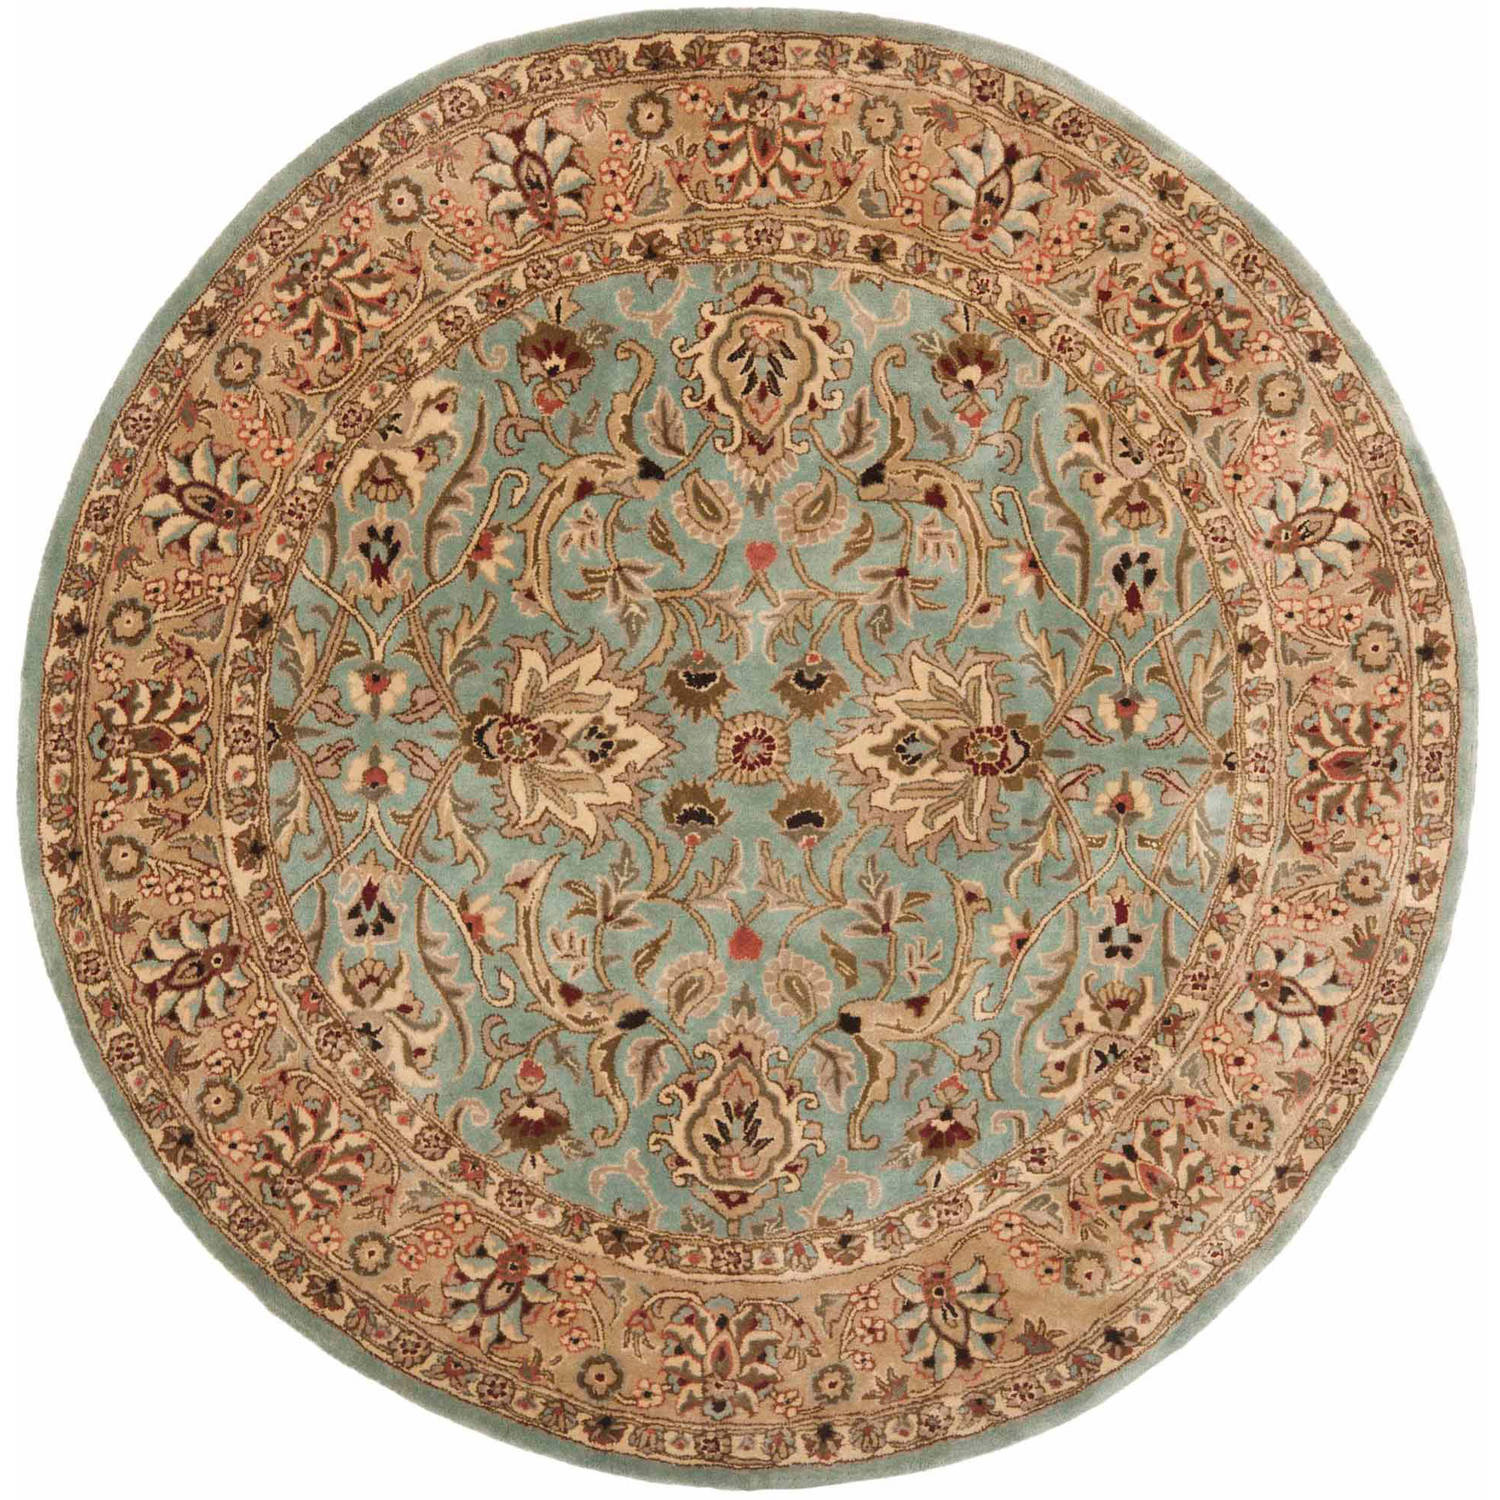 Safavieh Persian Legend Linette Hand Tufted New Zealand Wool Area Rug